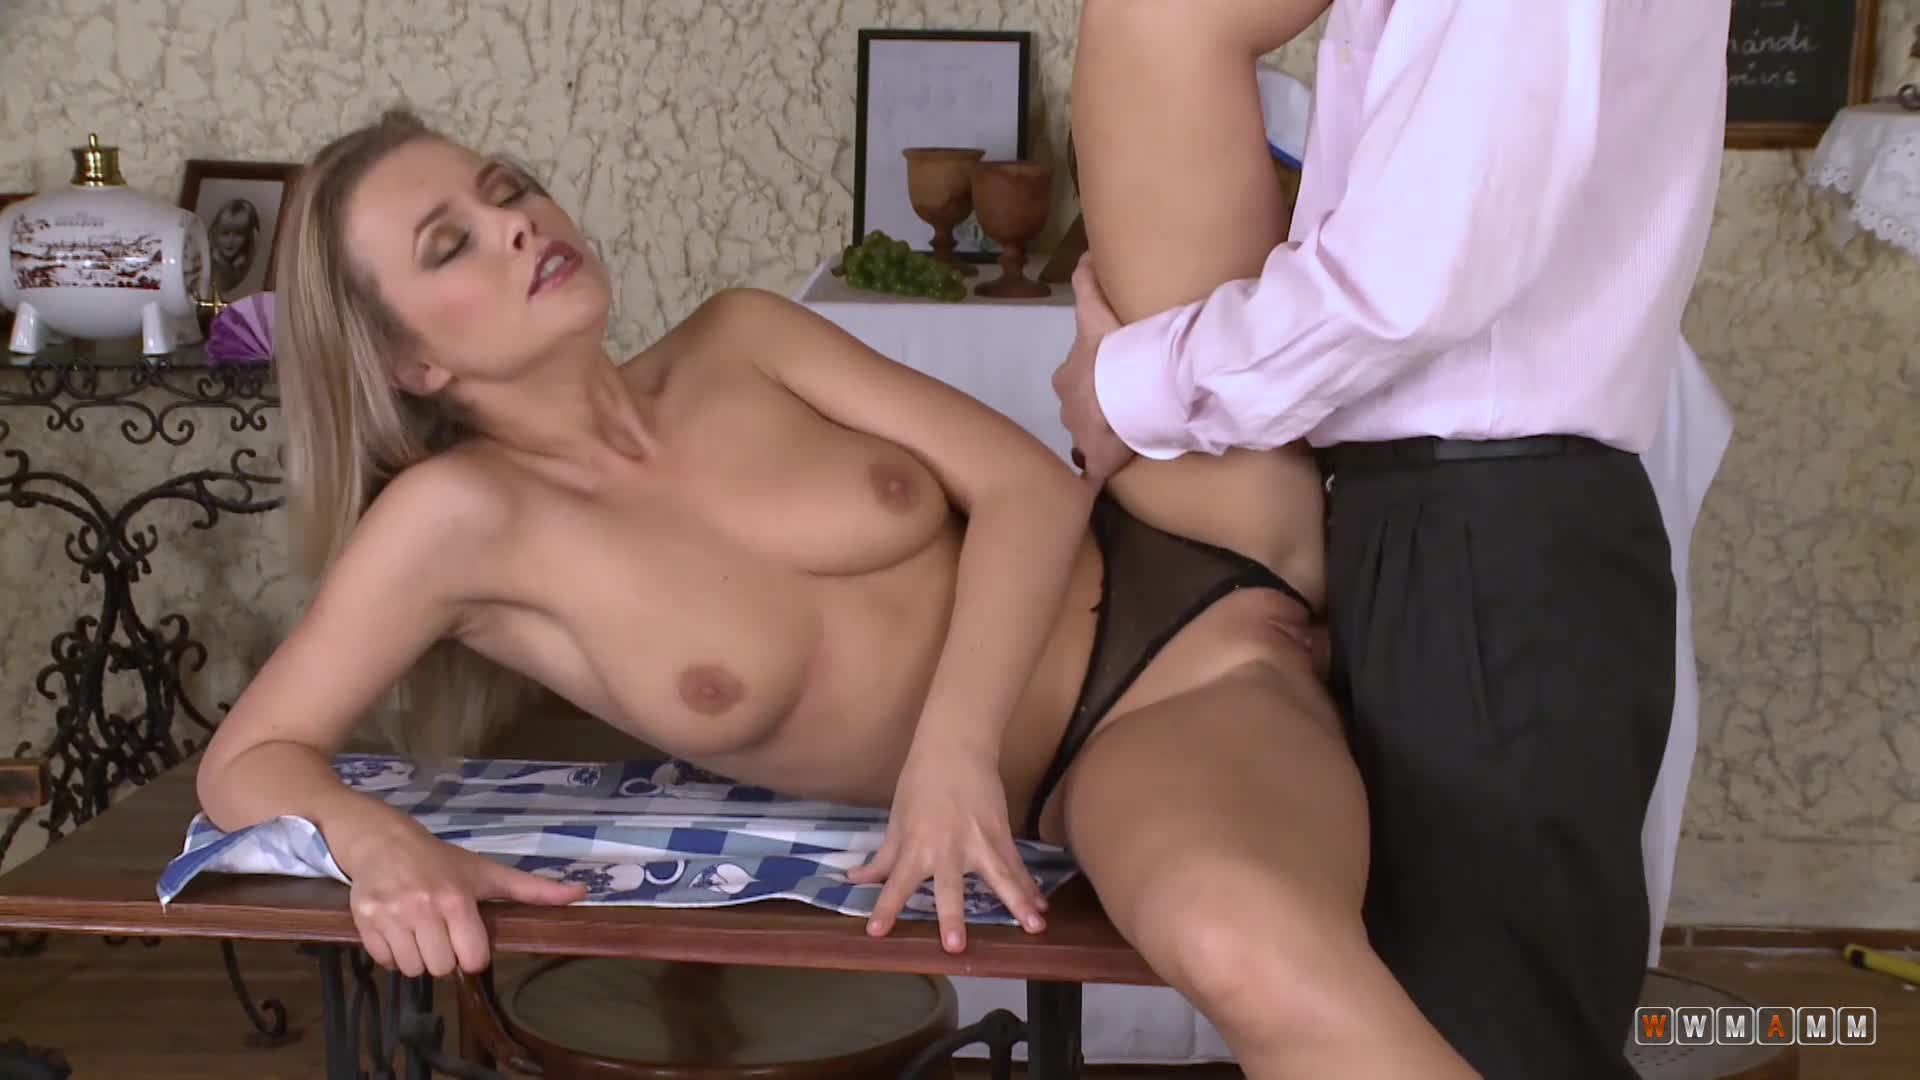 Busty Milf Takes Waiter's Fat Cock Right There On The Table